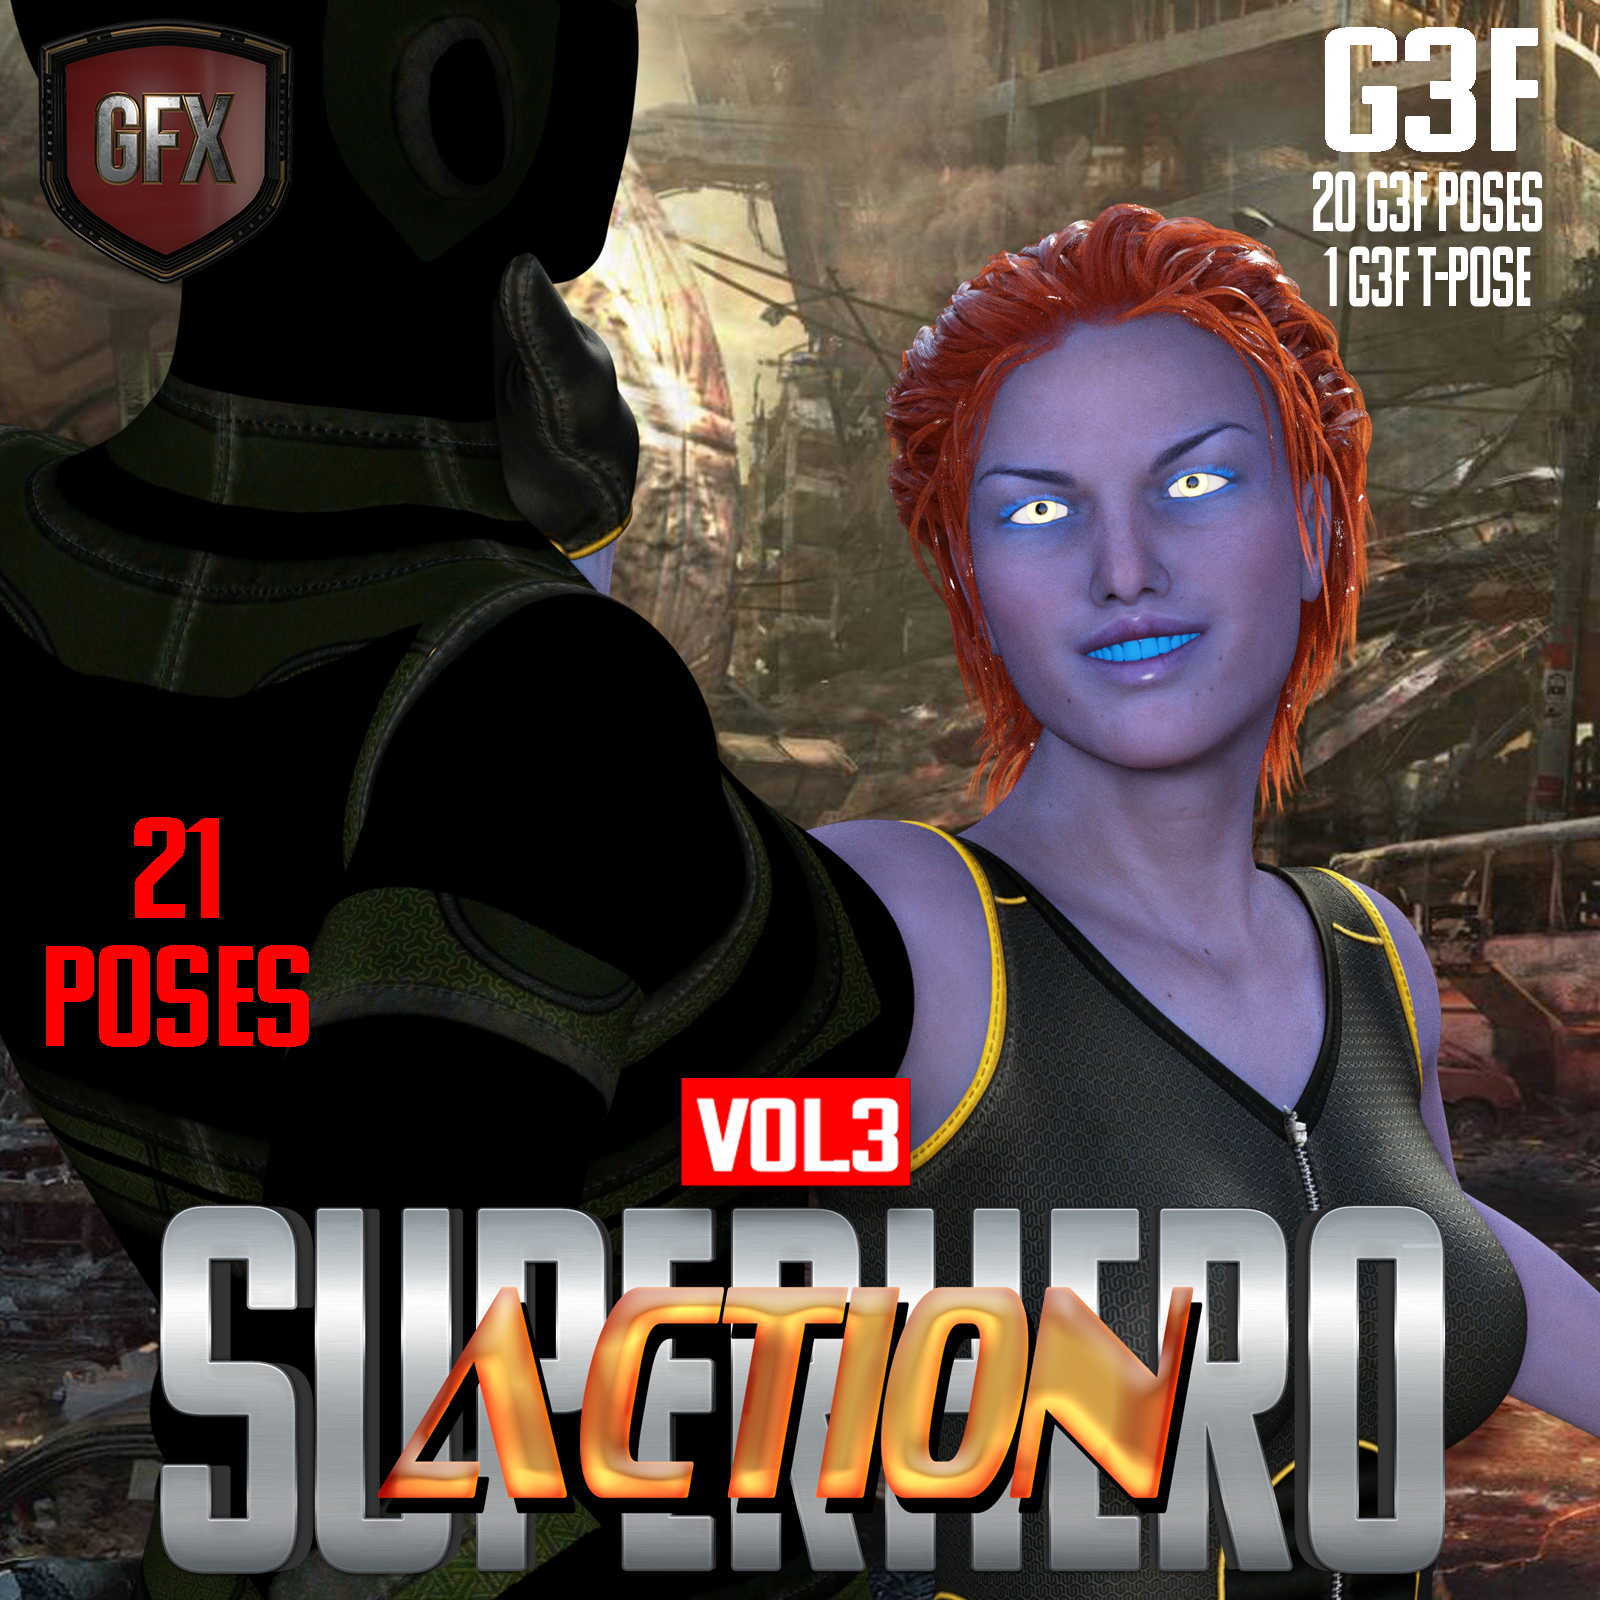 SuperHero Action for G3F Volume 3 by GriffinFX